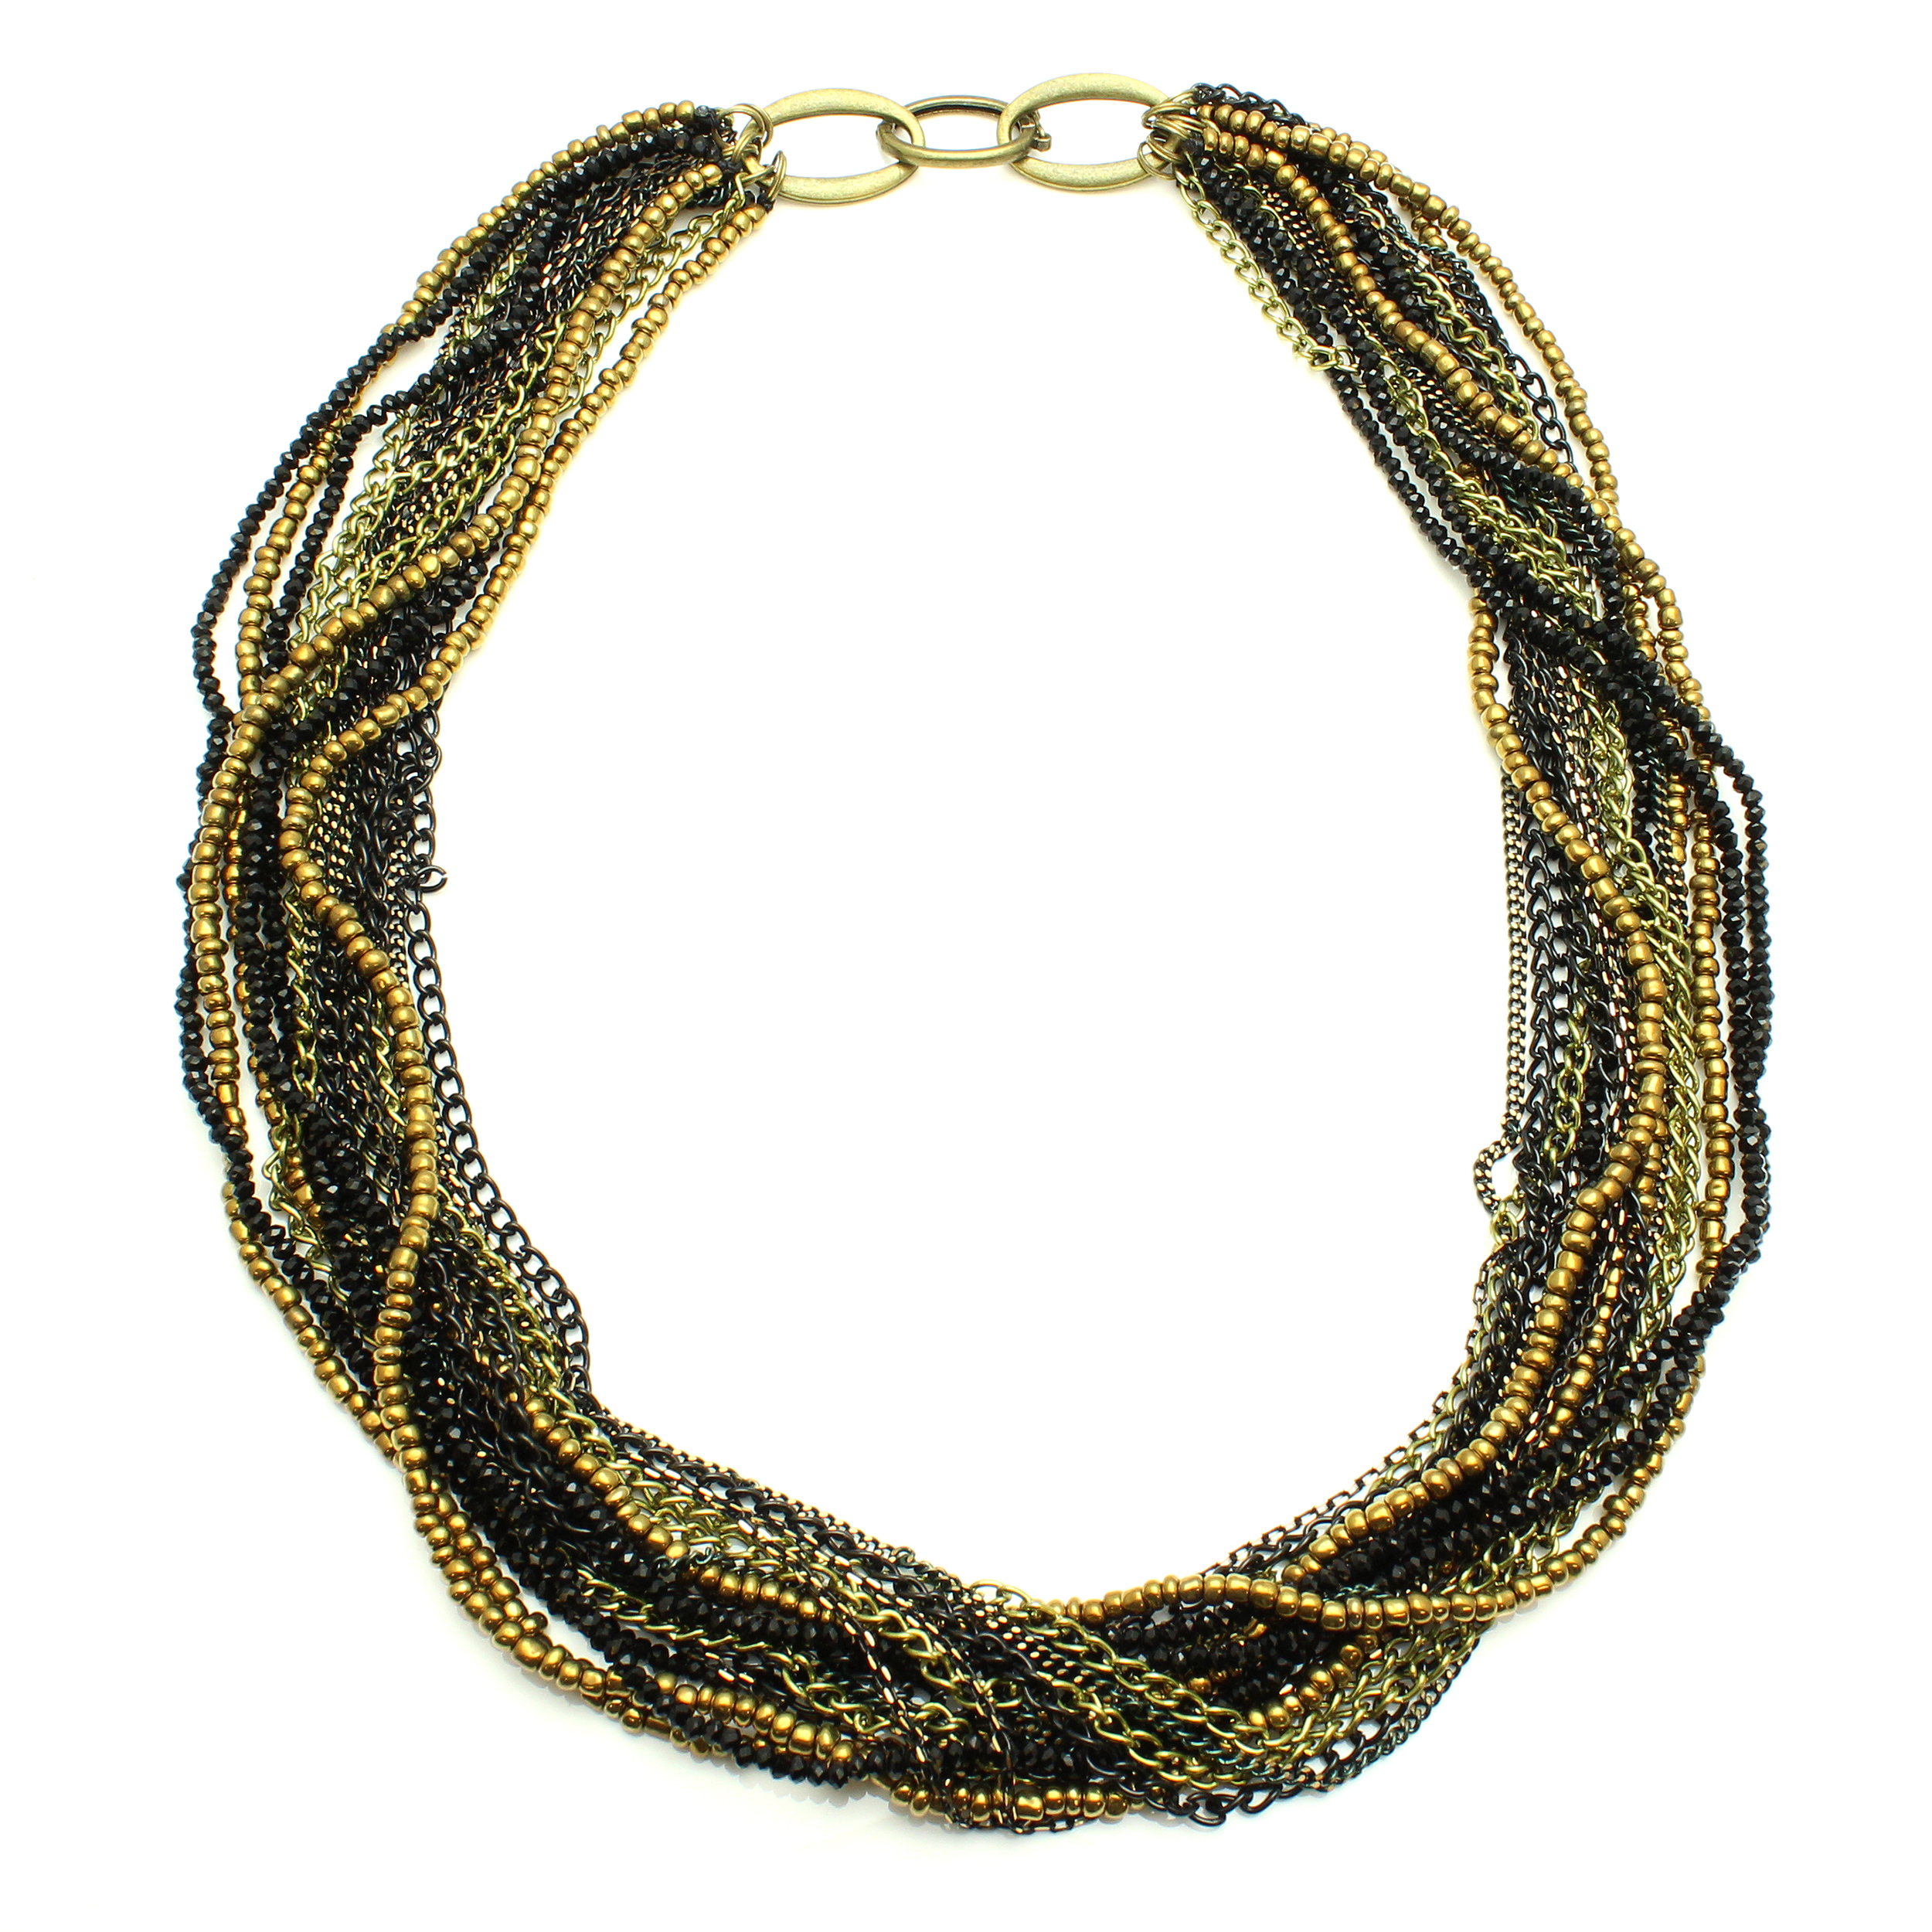 Starfish Project, Black Crystal and Antique Gold-Toned Chain Multi-Strand Adjustable Necklace